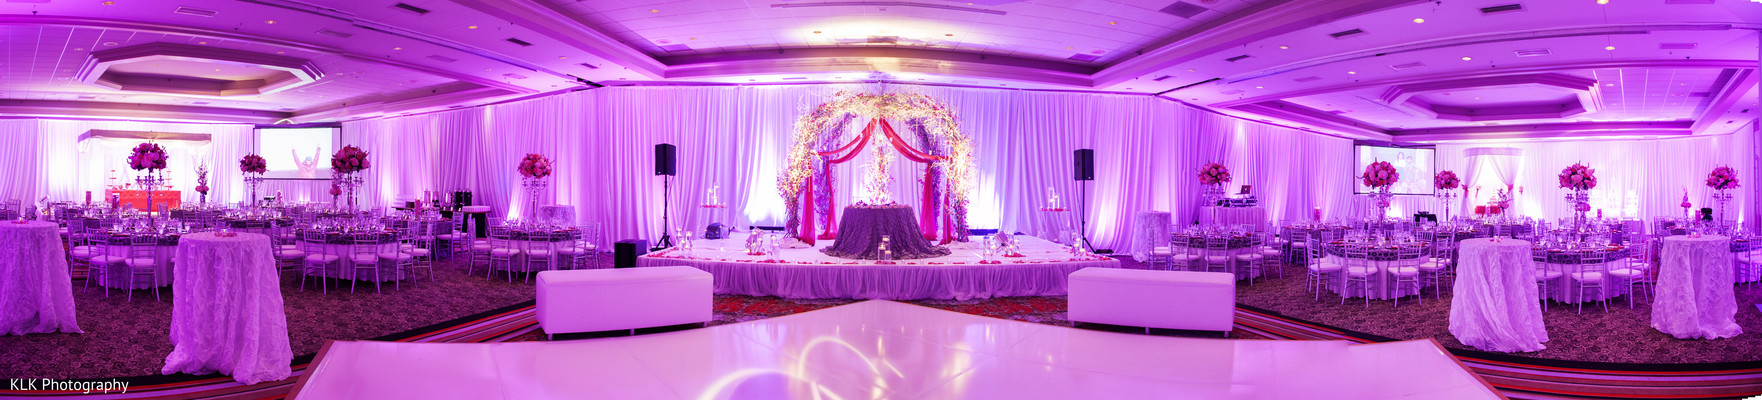 Venue in Tulsa, OK Indian Wedding by KLK Photography